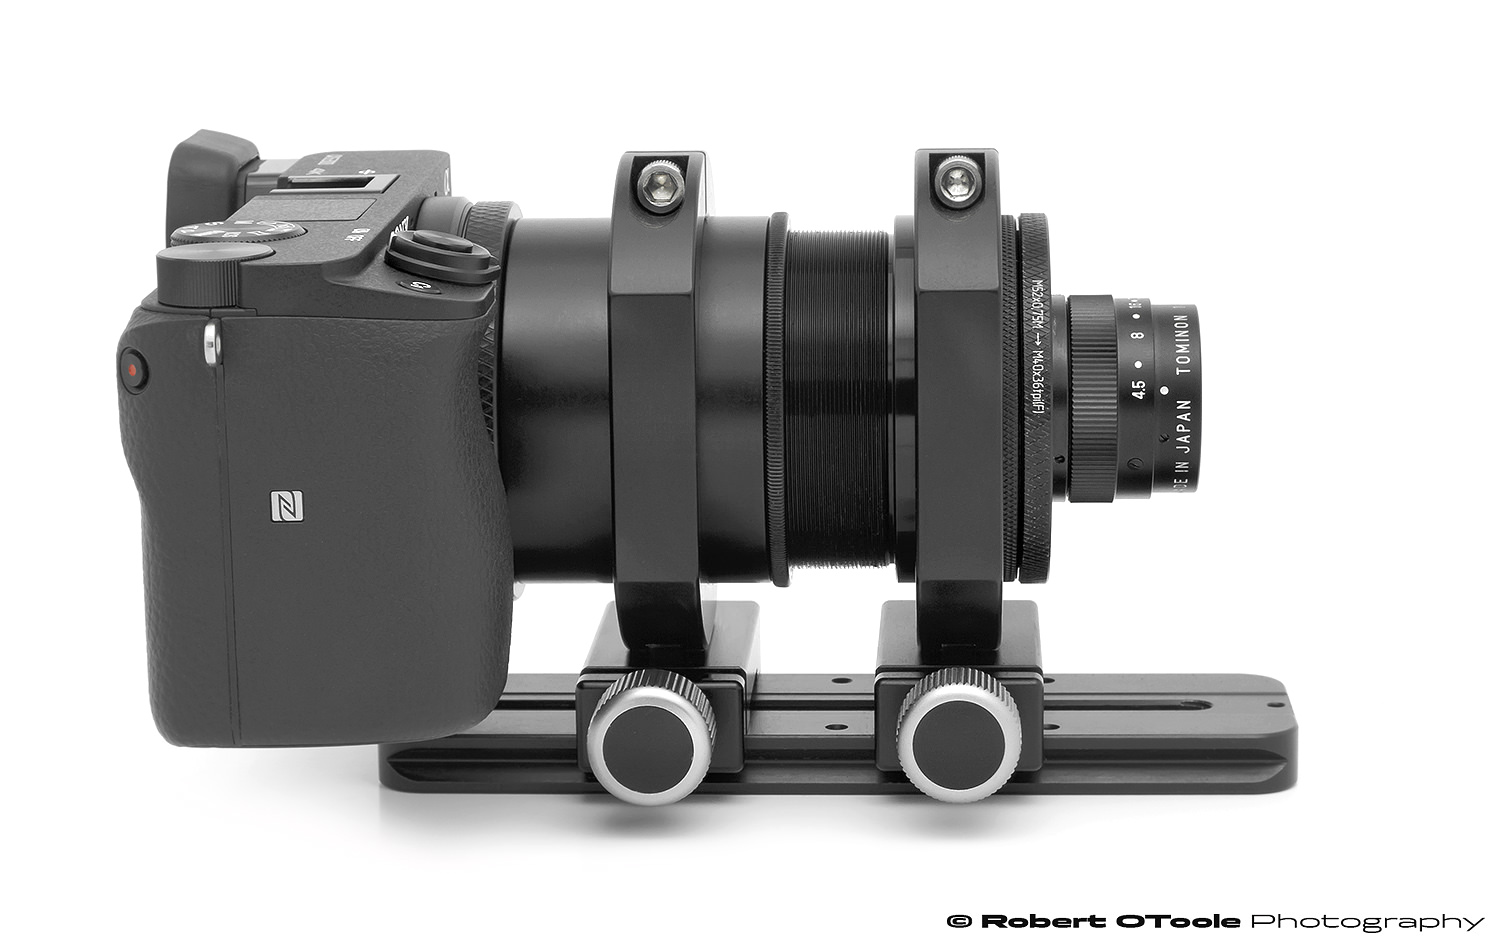 Tominon-35mm-f4.5-scanner-lens-on-52mm-studio-setup-Robert-OToole-Photography.jpg